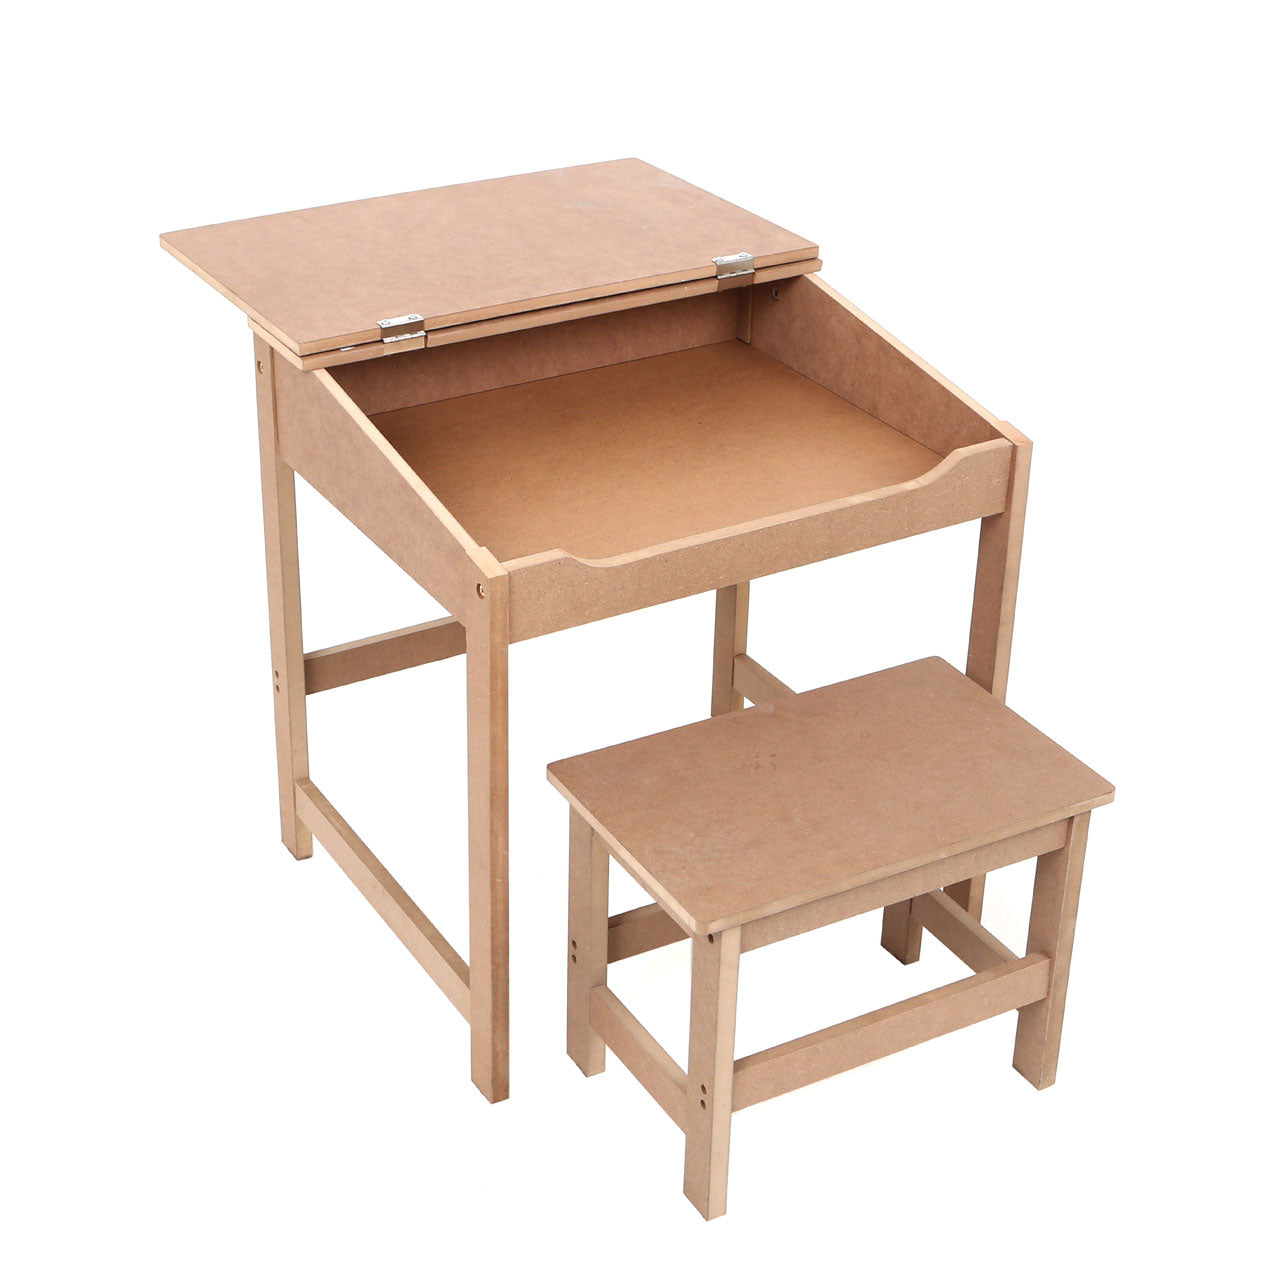 Children's Desk And Stool - Ezzo